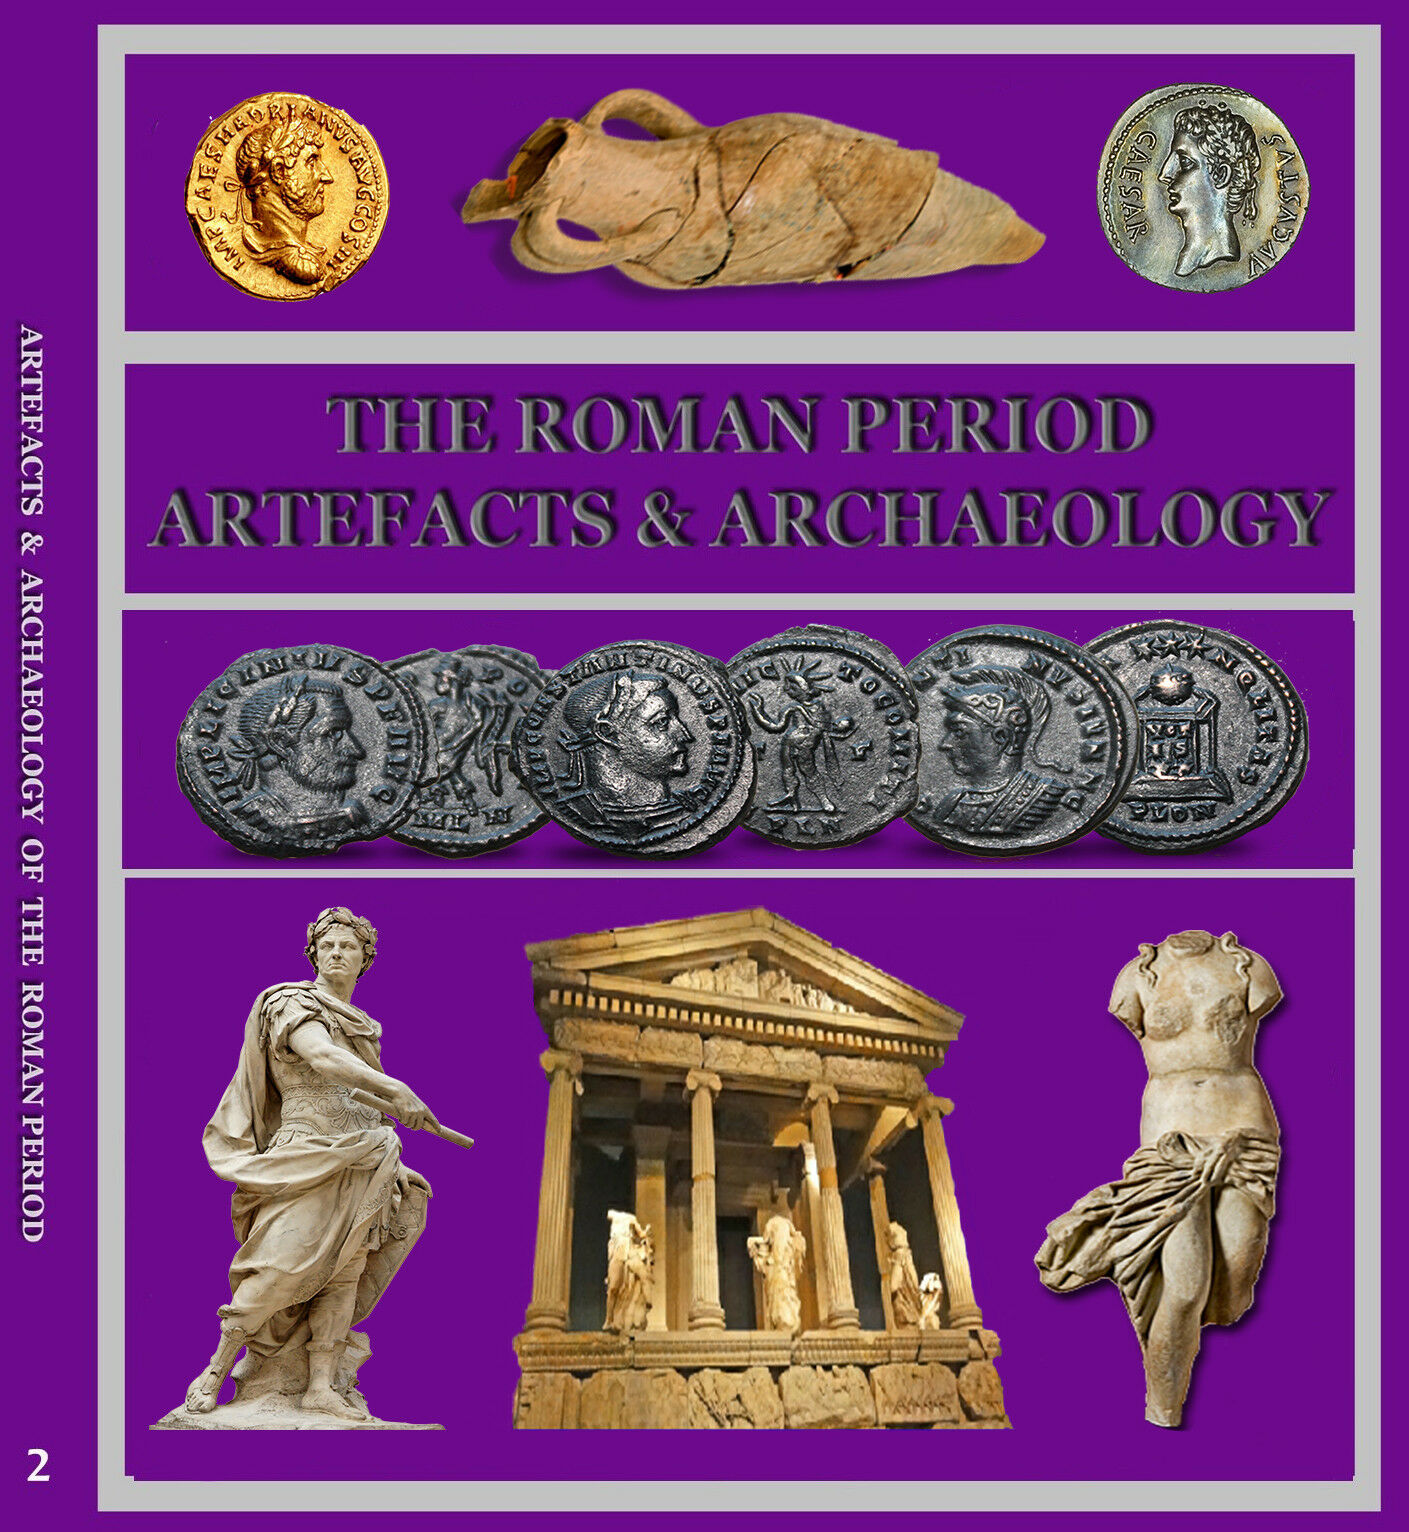 Metal detecting artefacts roman period pdf books set 2 2 discs 1 of 10only 5 available fandeluxe Choice Image